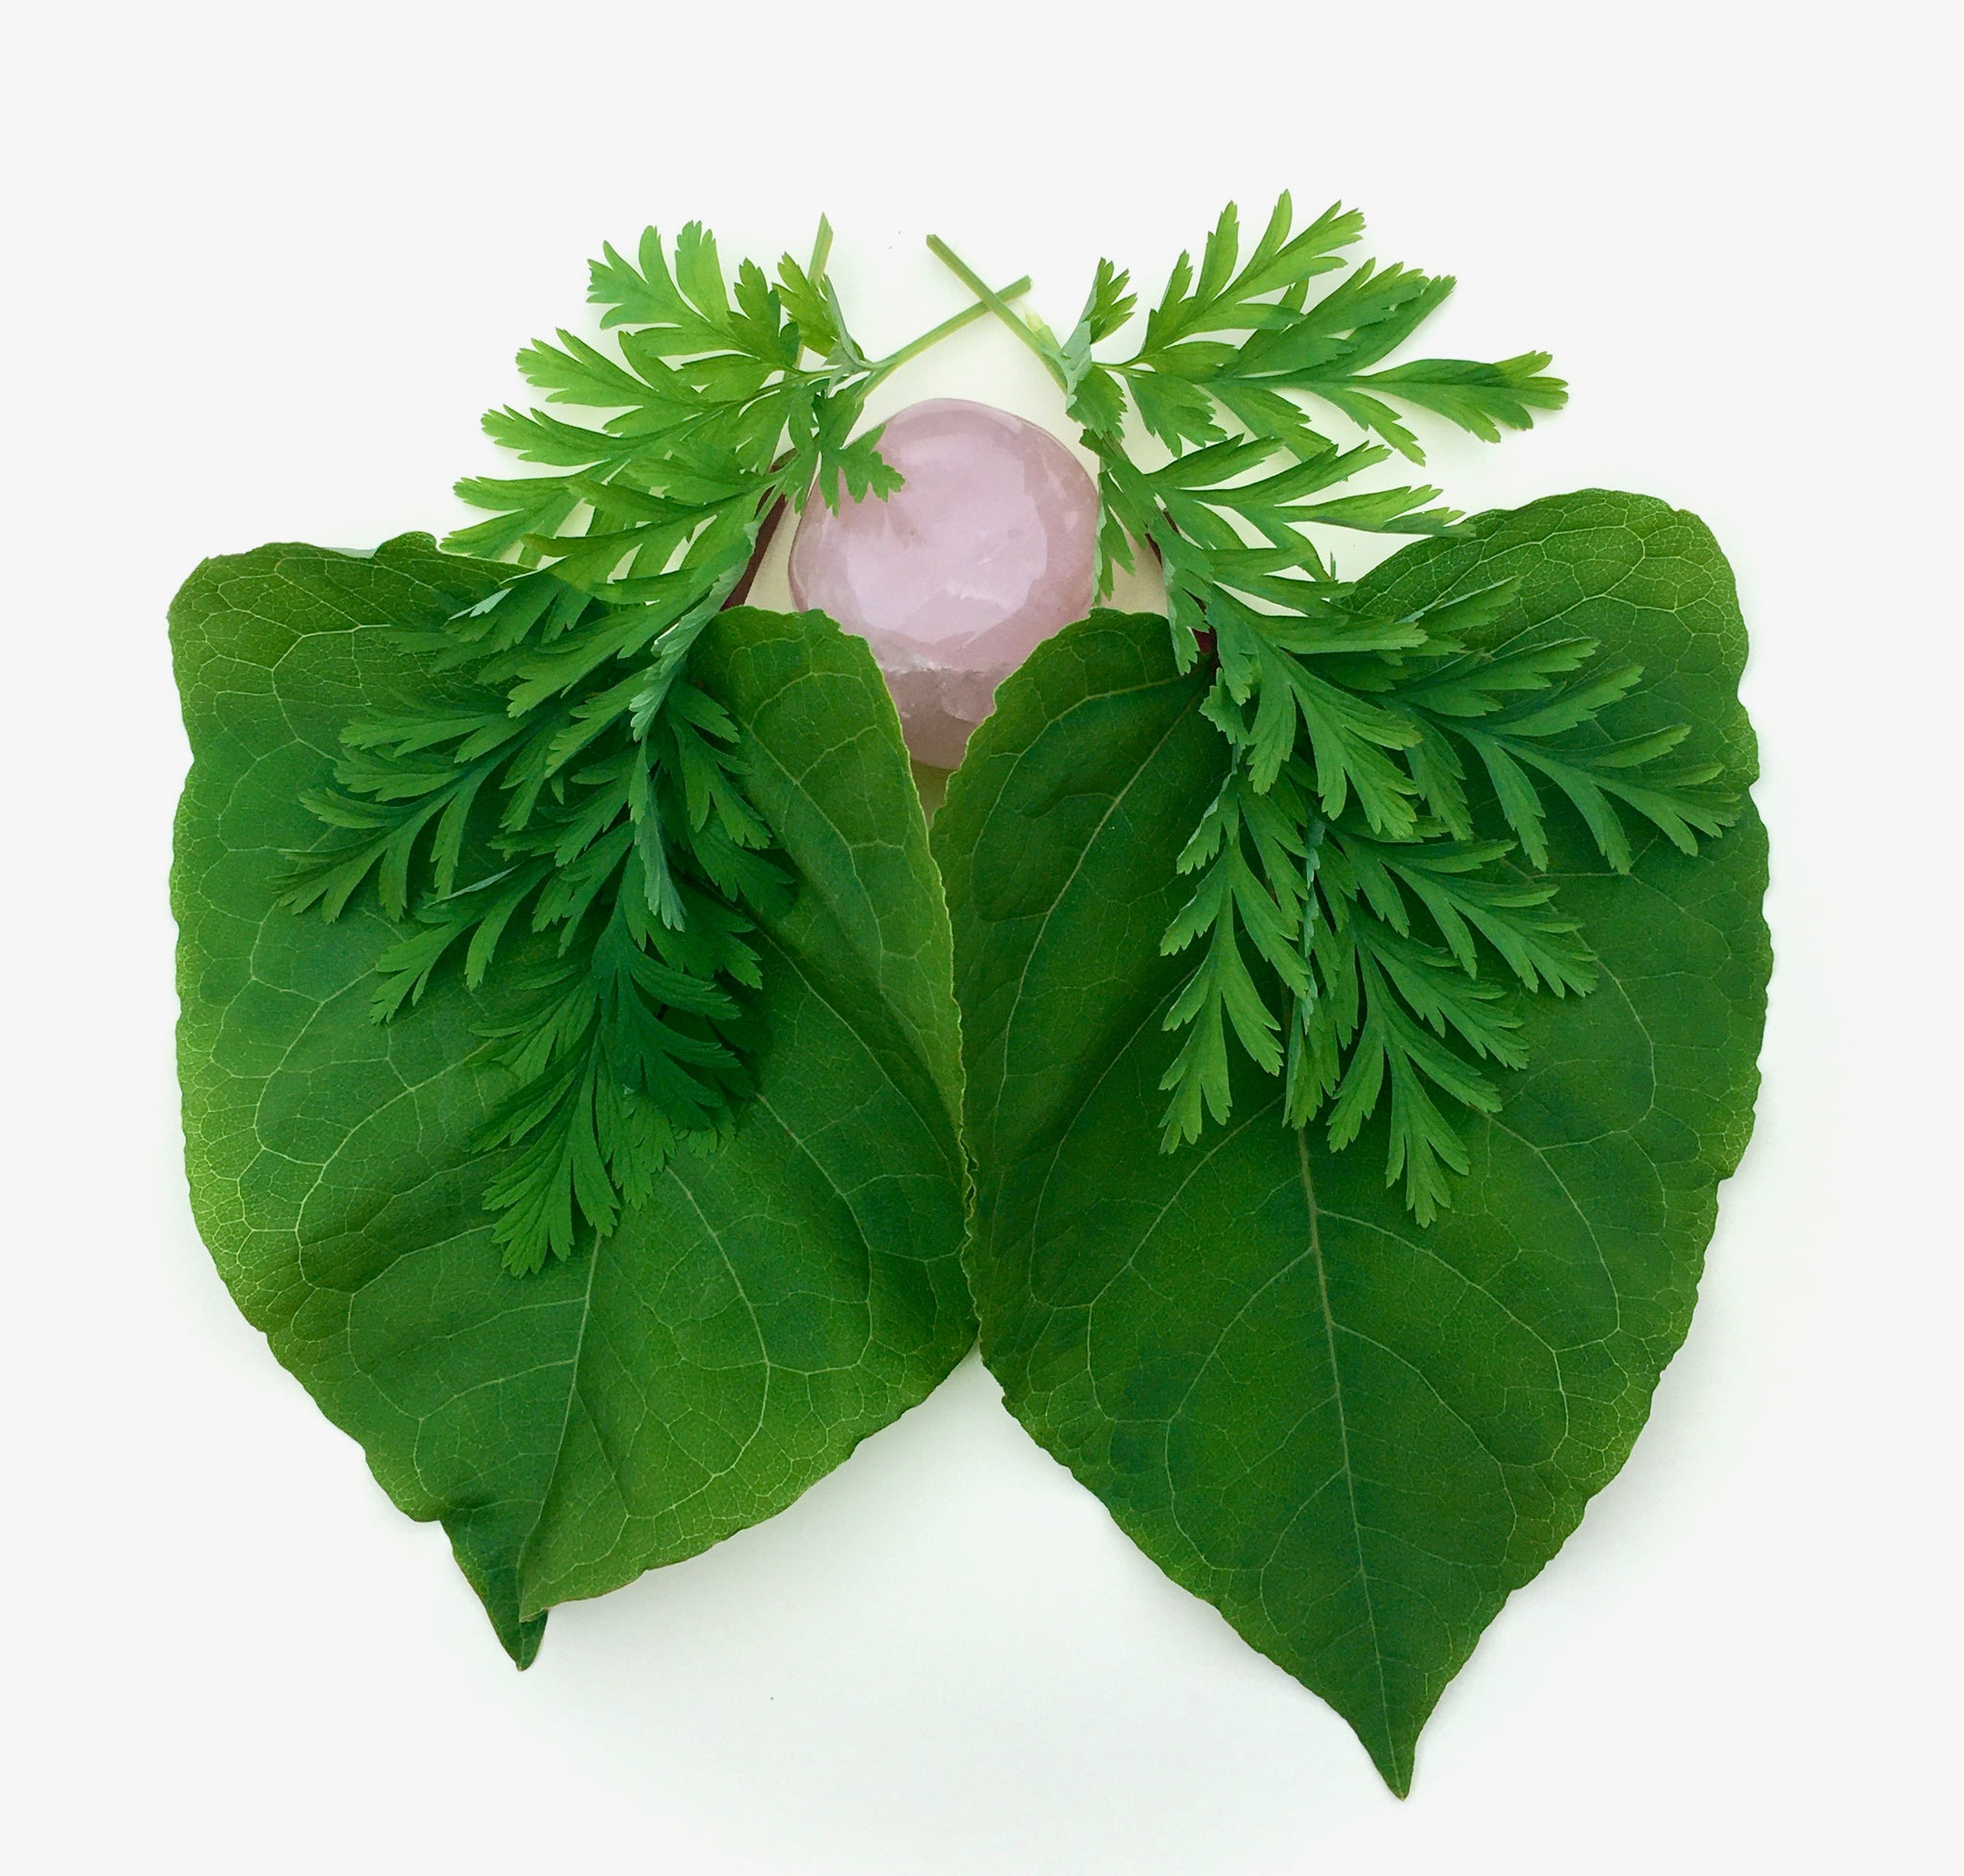 A rose quartz heart, surrounded by lungs made of  gentle Bleeding Heart leaves and large soft Japanese Knotweed leaves.